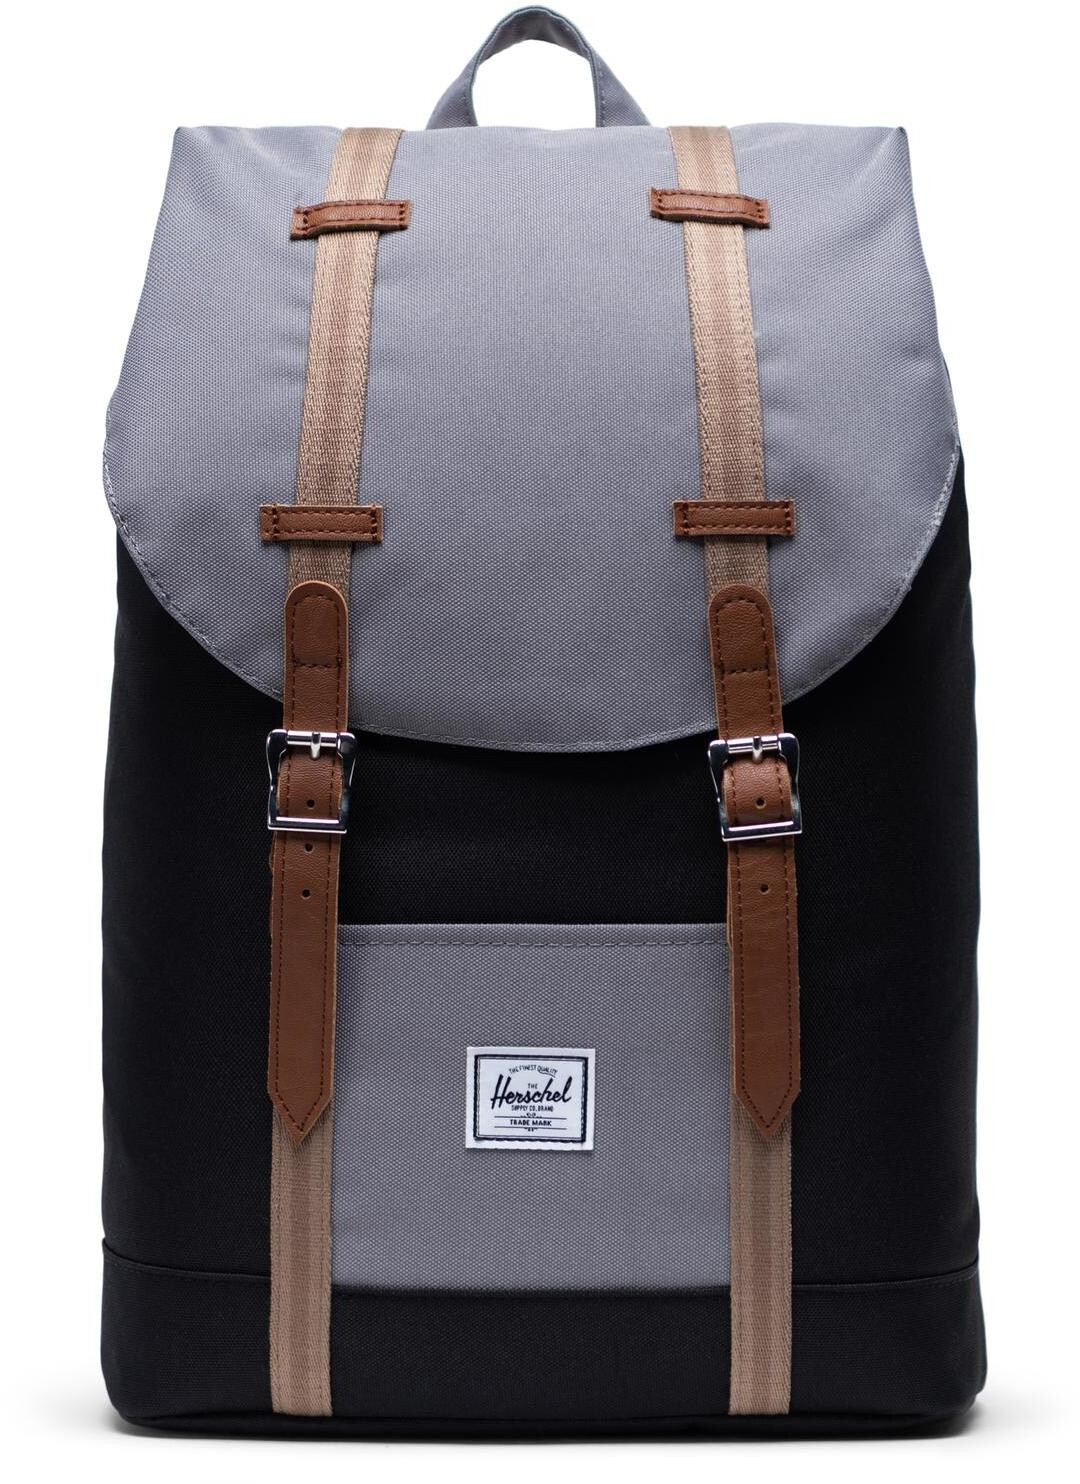 Herschel Retreat Mid Volume Rugzak 14l, blackgreypine barktan